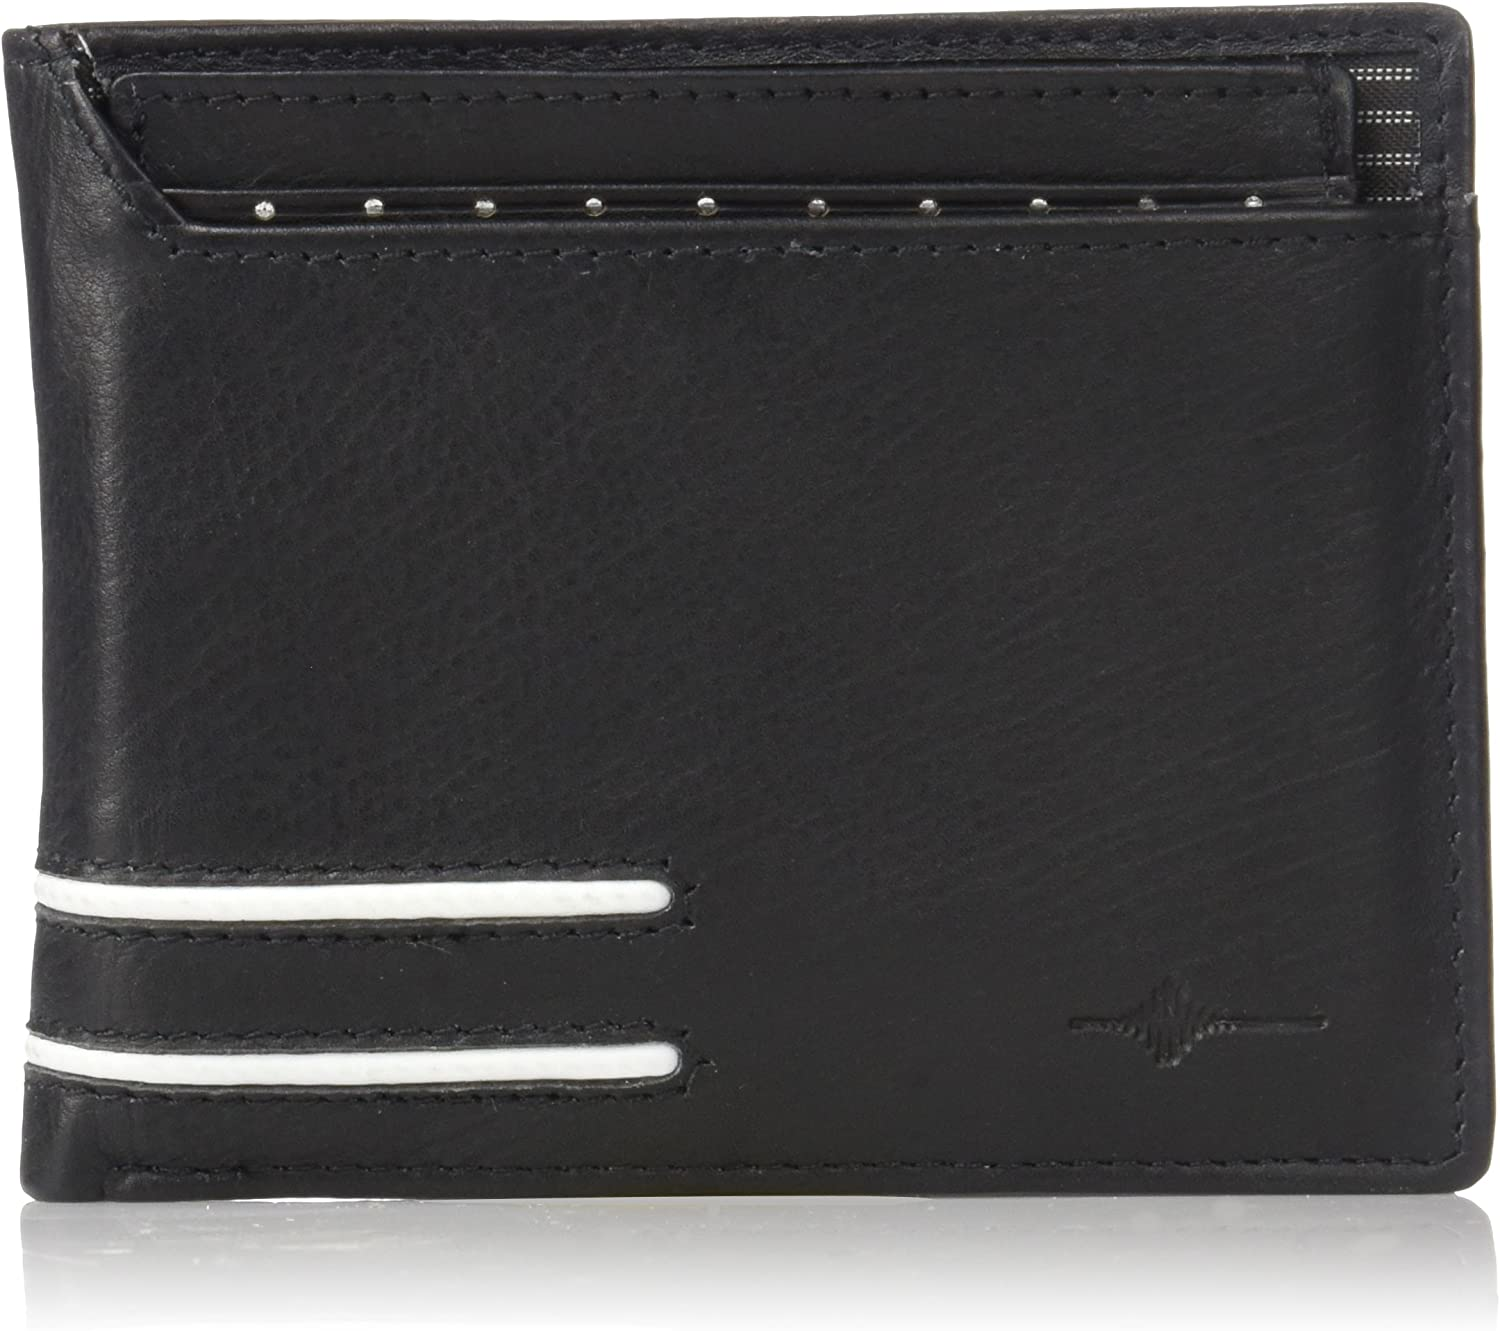 Buxton Men's Luciano RFID Blocking Convertible Thinfold Slim Wallet